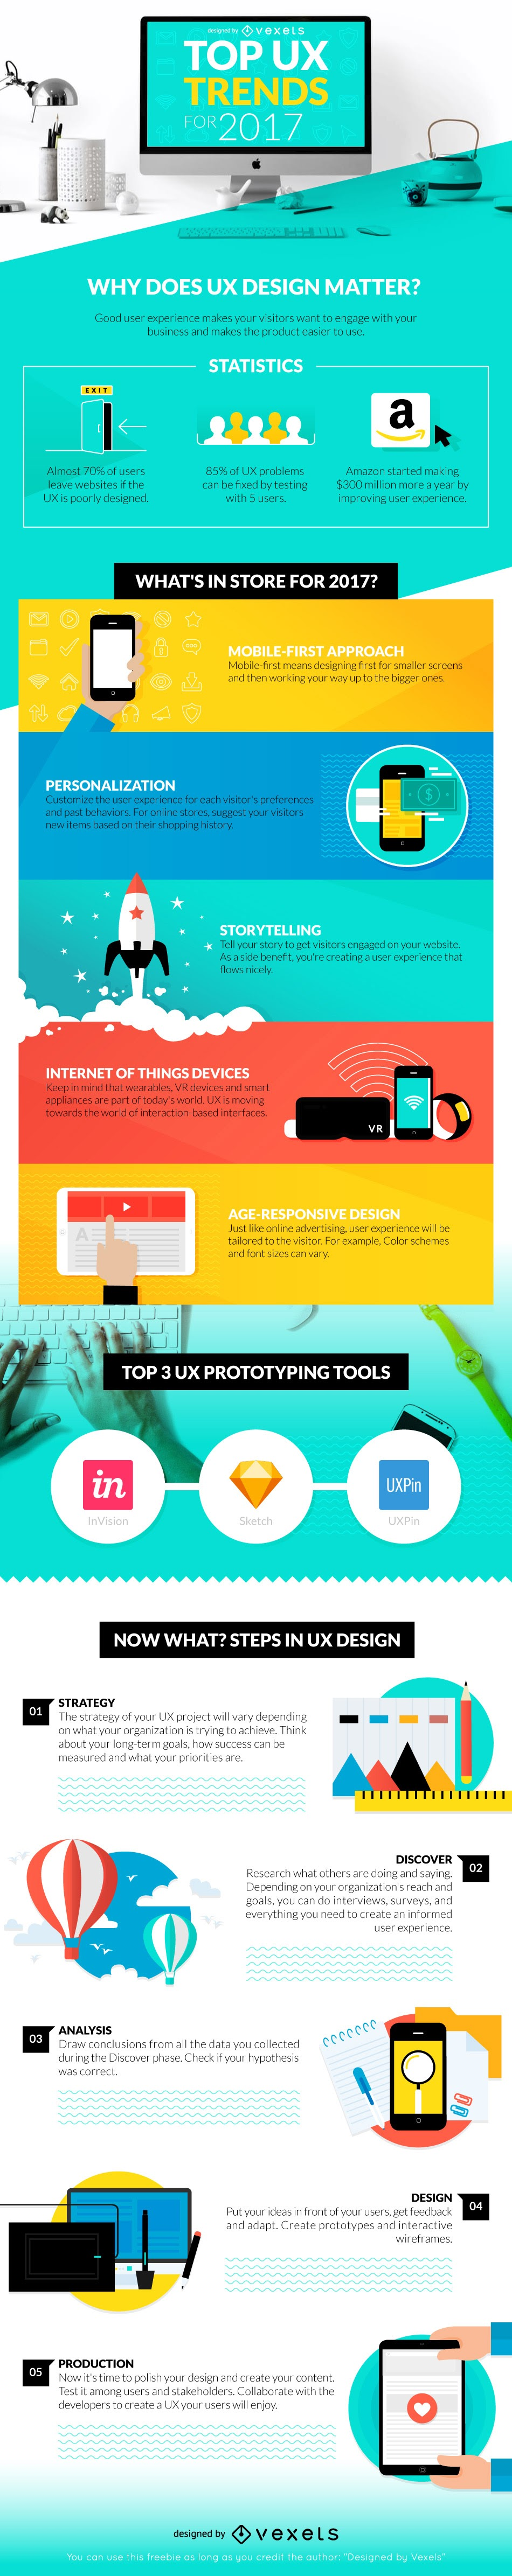 Top UX Trends for 2017 #infographic